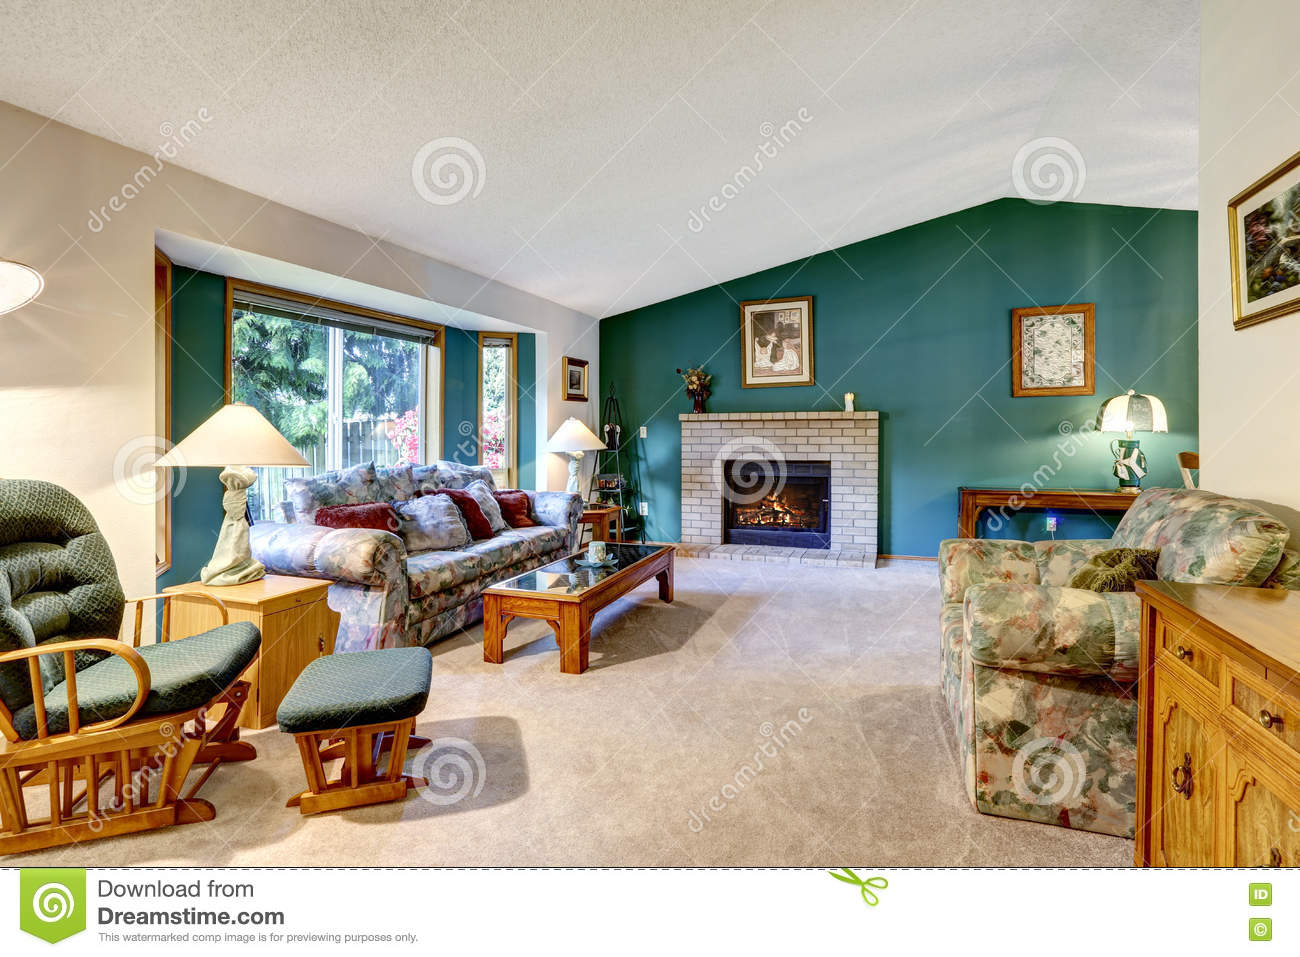 Elegant White And Green Living Room Classic American Design Brick Fireplace Rocking Chair And Colorful Sofa Stock Image Image Of Brick Fireplace 74224467